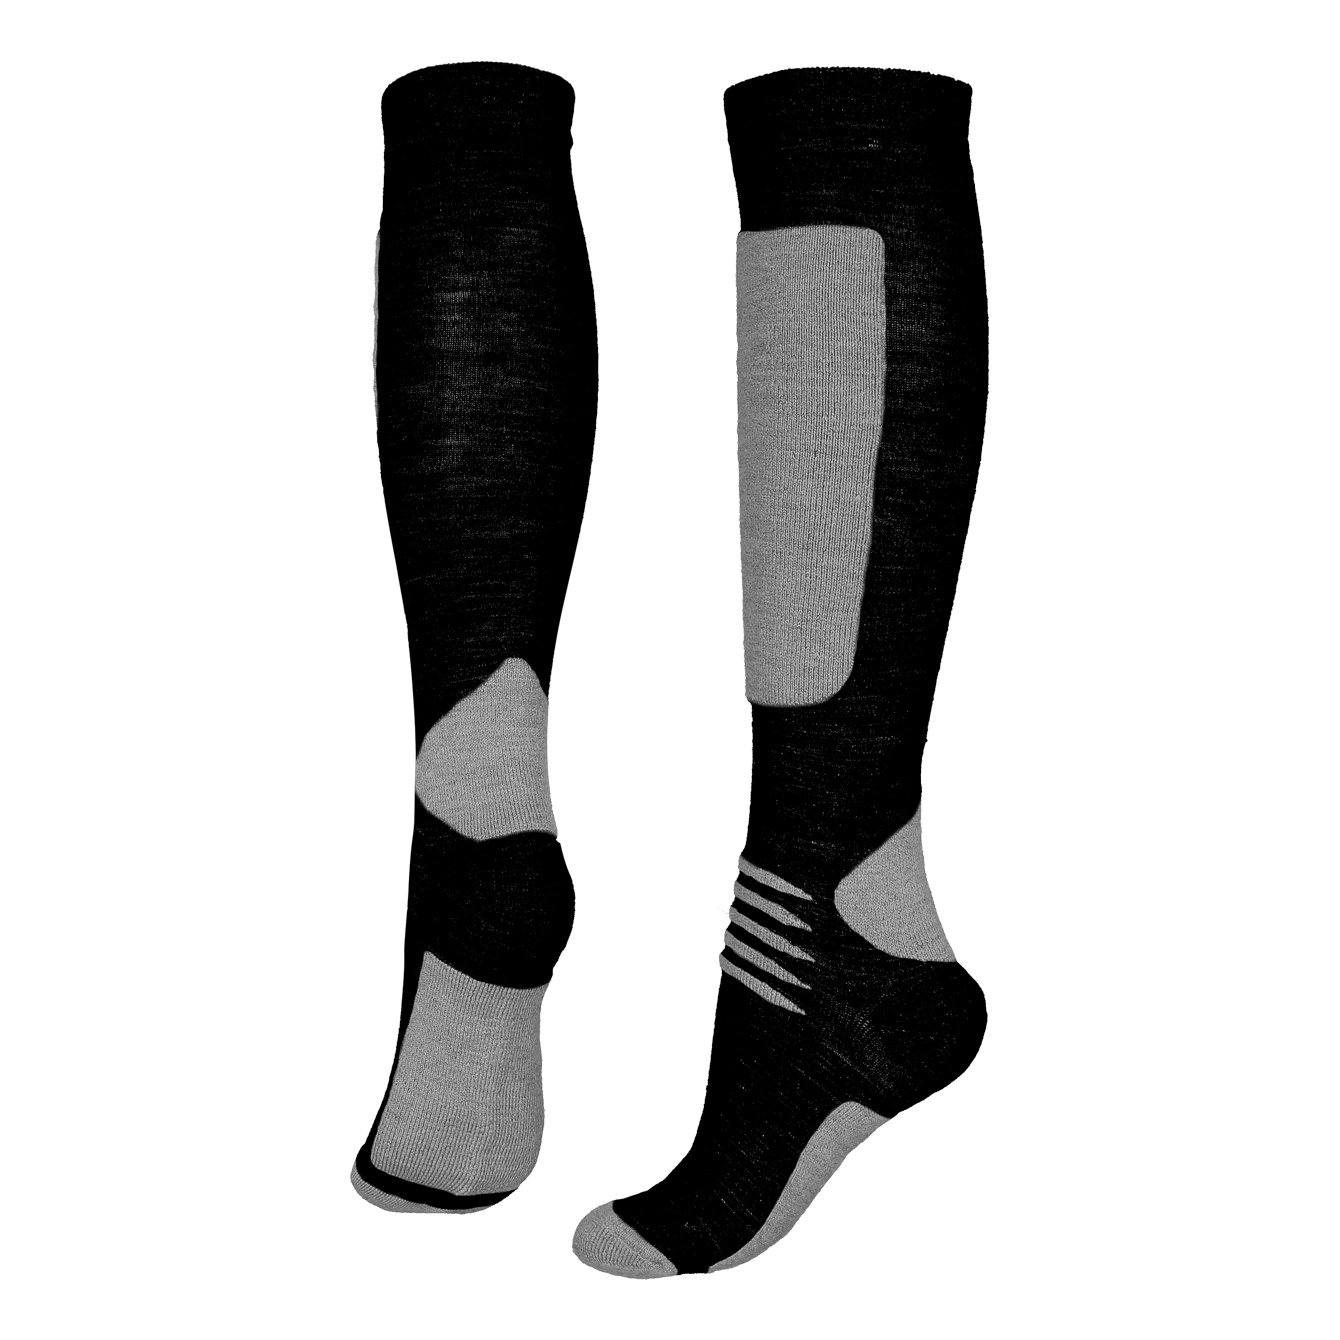 North Outdoor - Merino 70 Pro Socks High - Weekendbee - sustainable sportswear